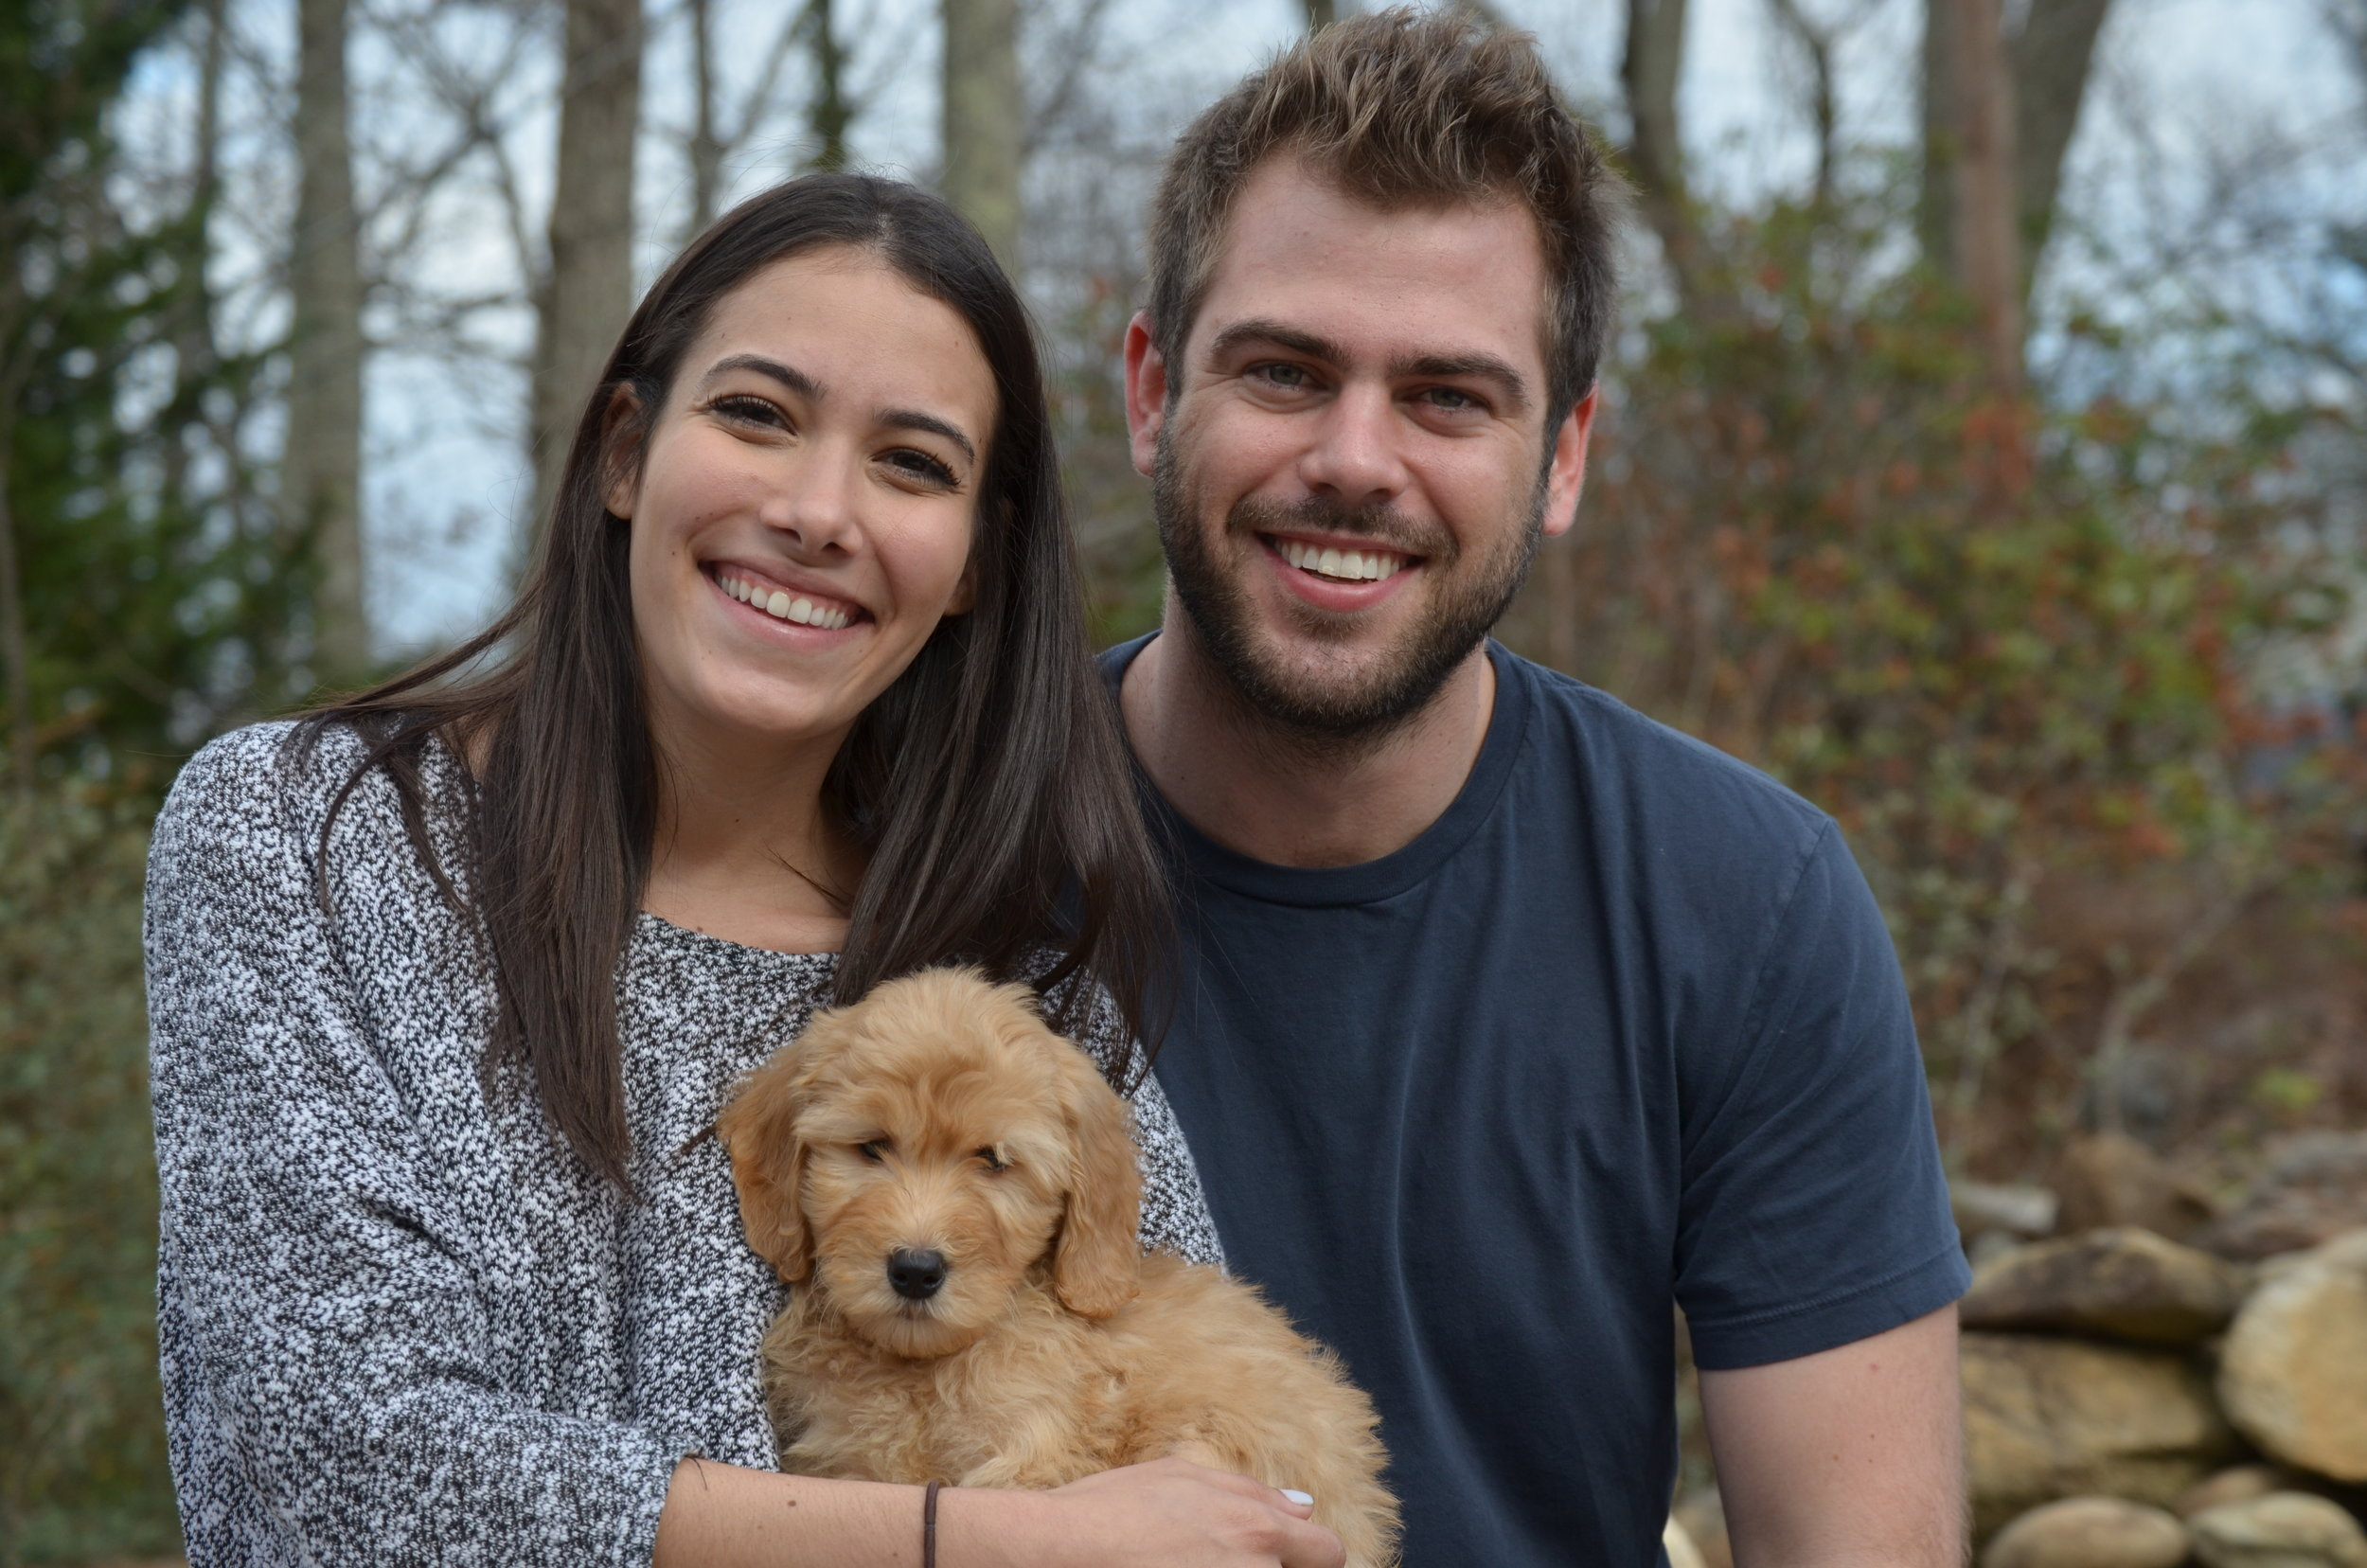 Allie is a Goldendoodle who loves her new parents